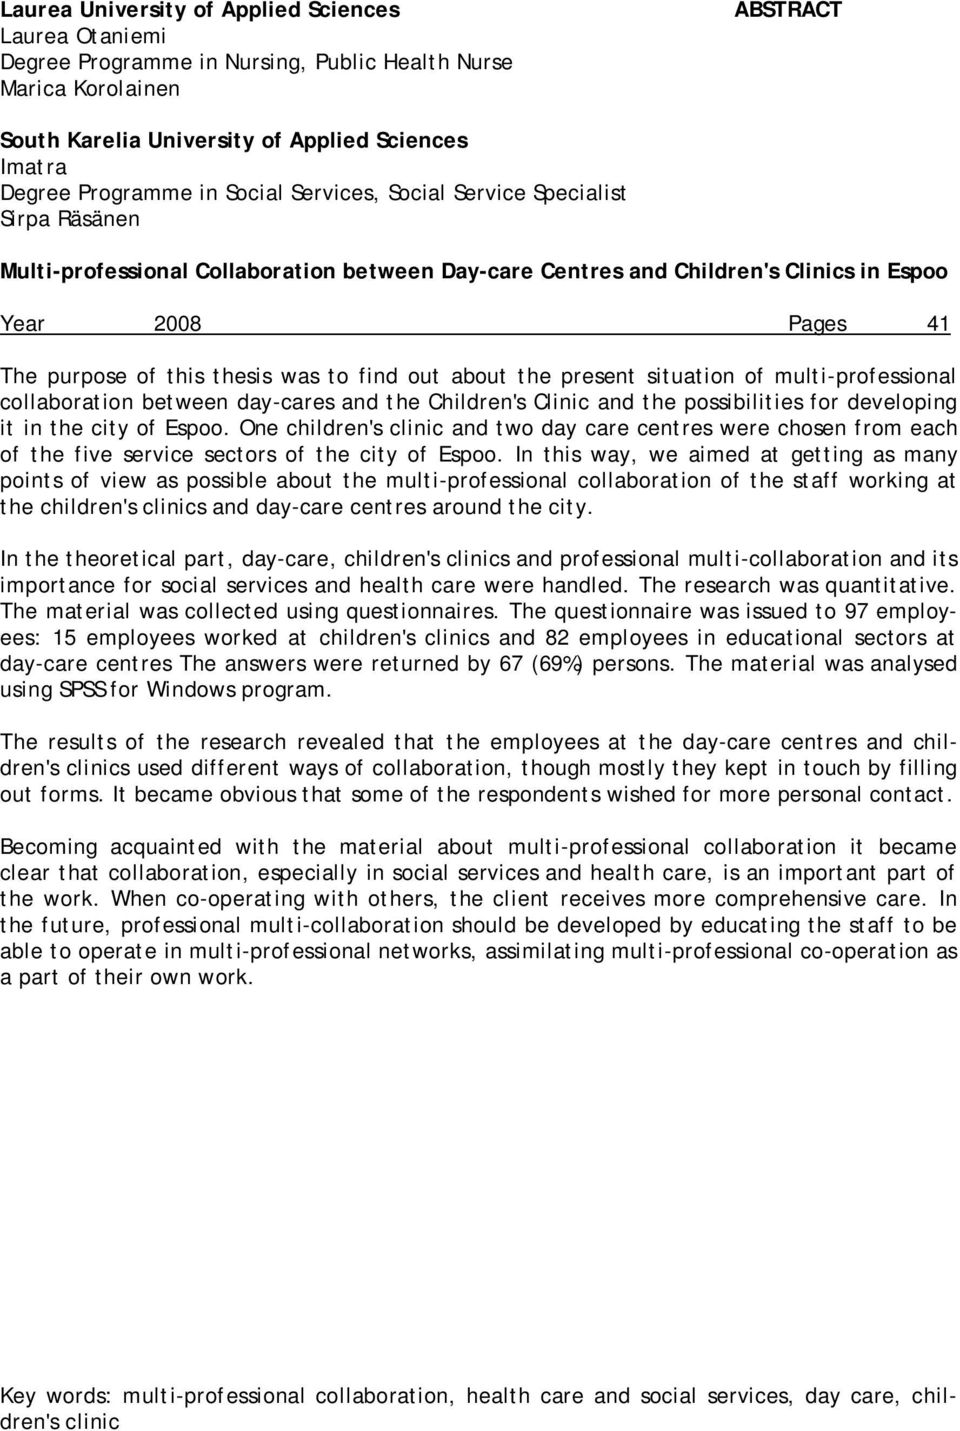 to find out about the present situation of multi-professional collaboration between day-cares and the Children's Clinic and the possibilities for developing it in the city of Espoo.